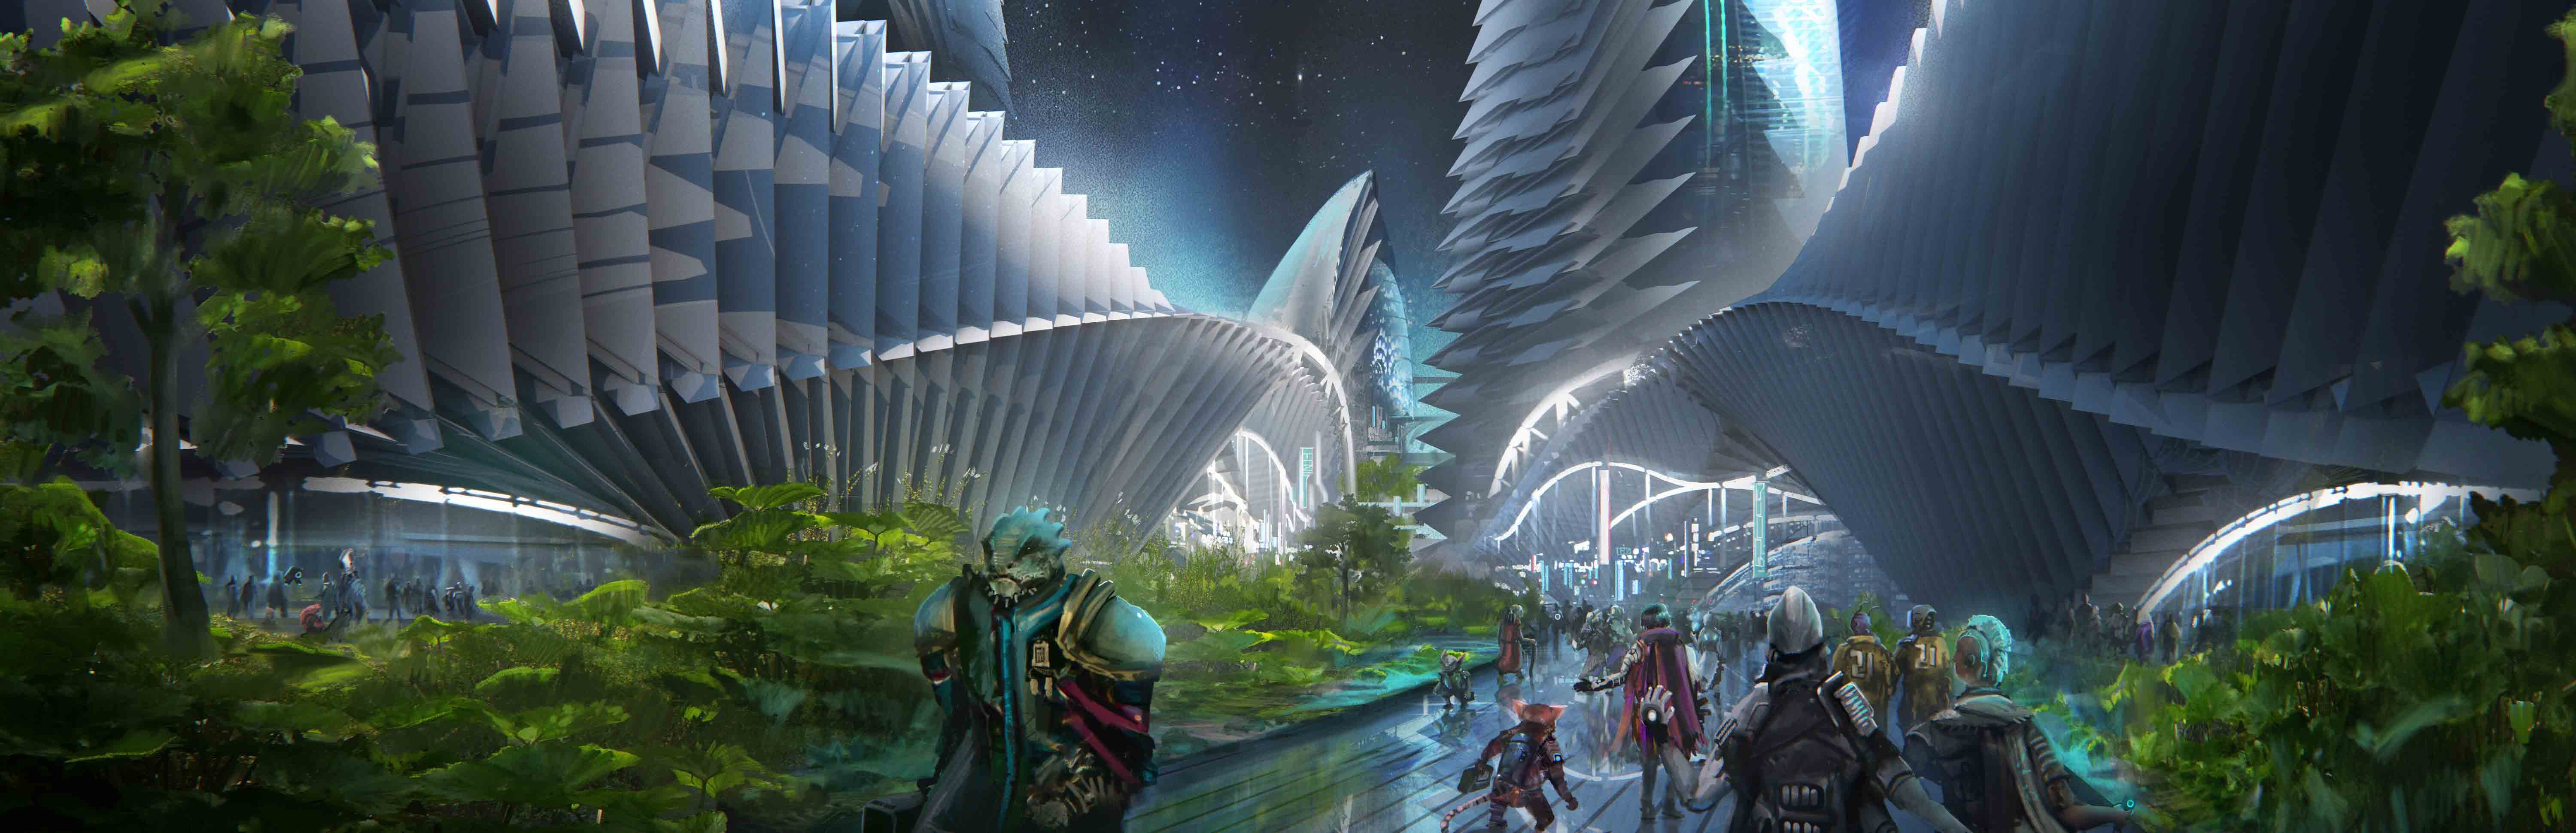 The open-air streets of Absalom Station bustle with diverse crowds of alien beings.